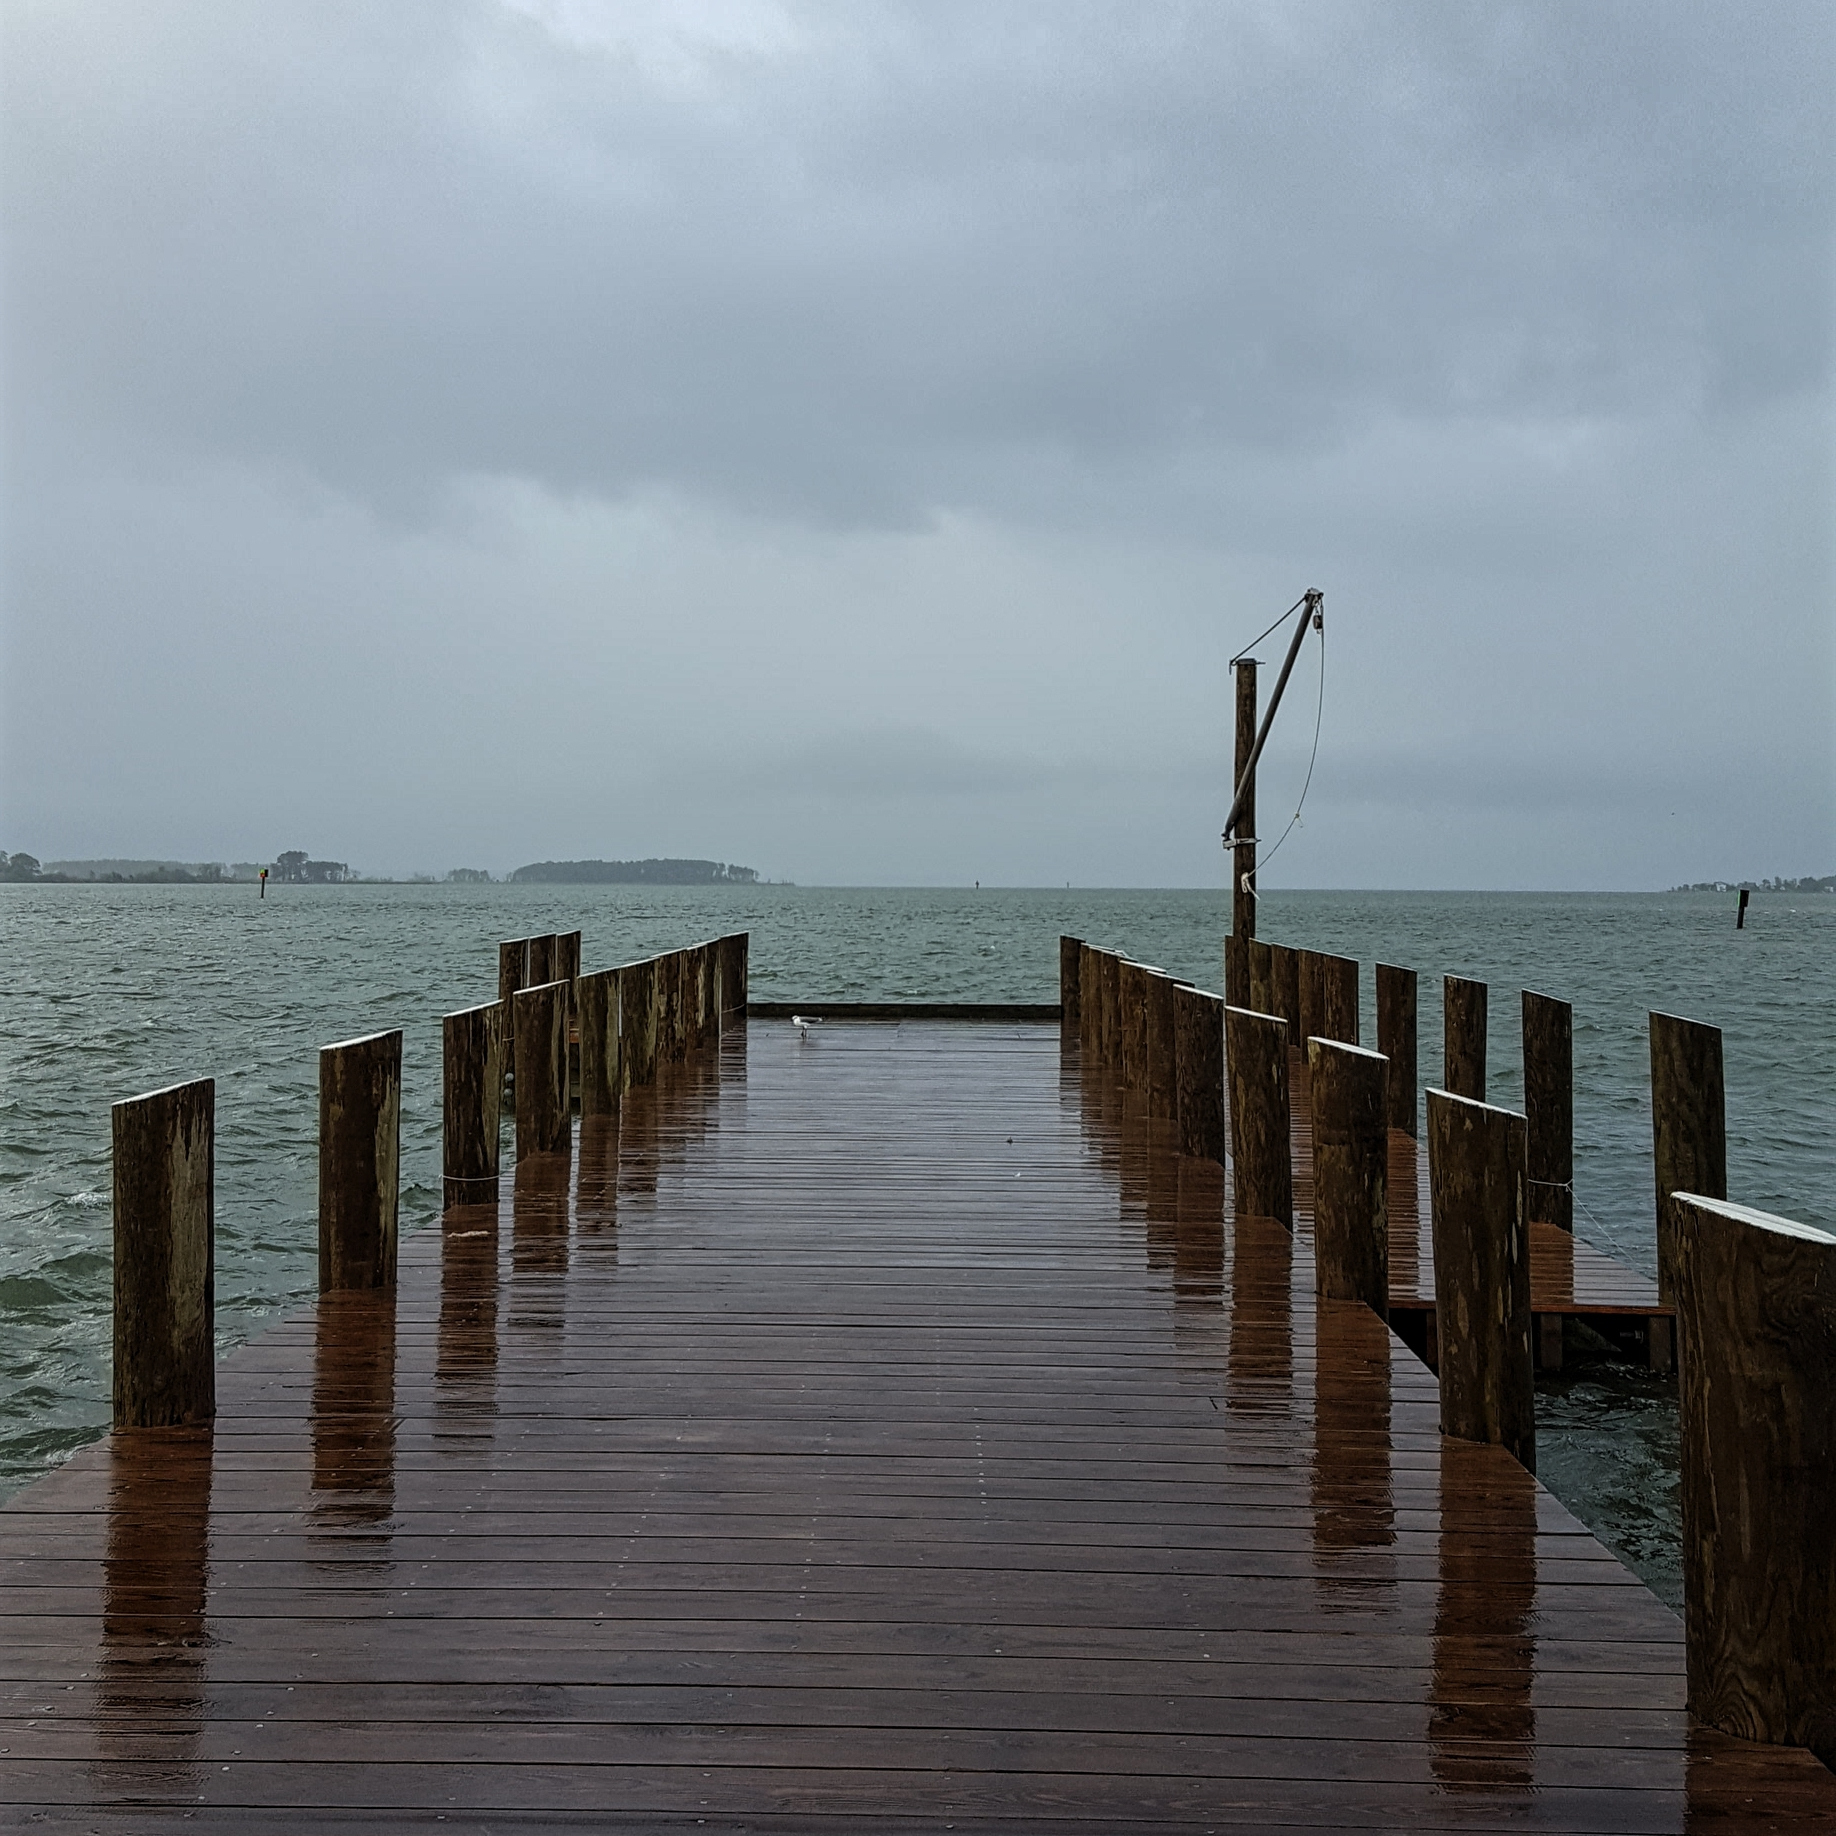 St. George Landing, Piney Point, MD